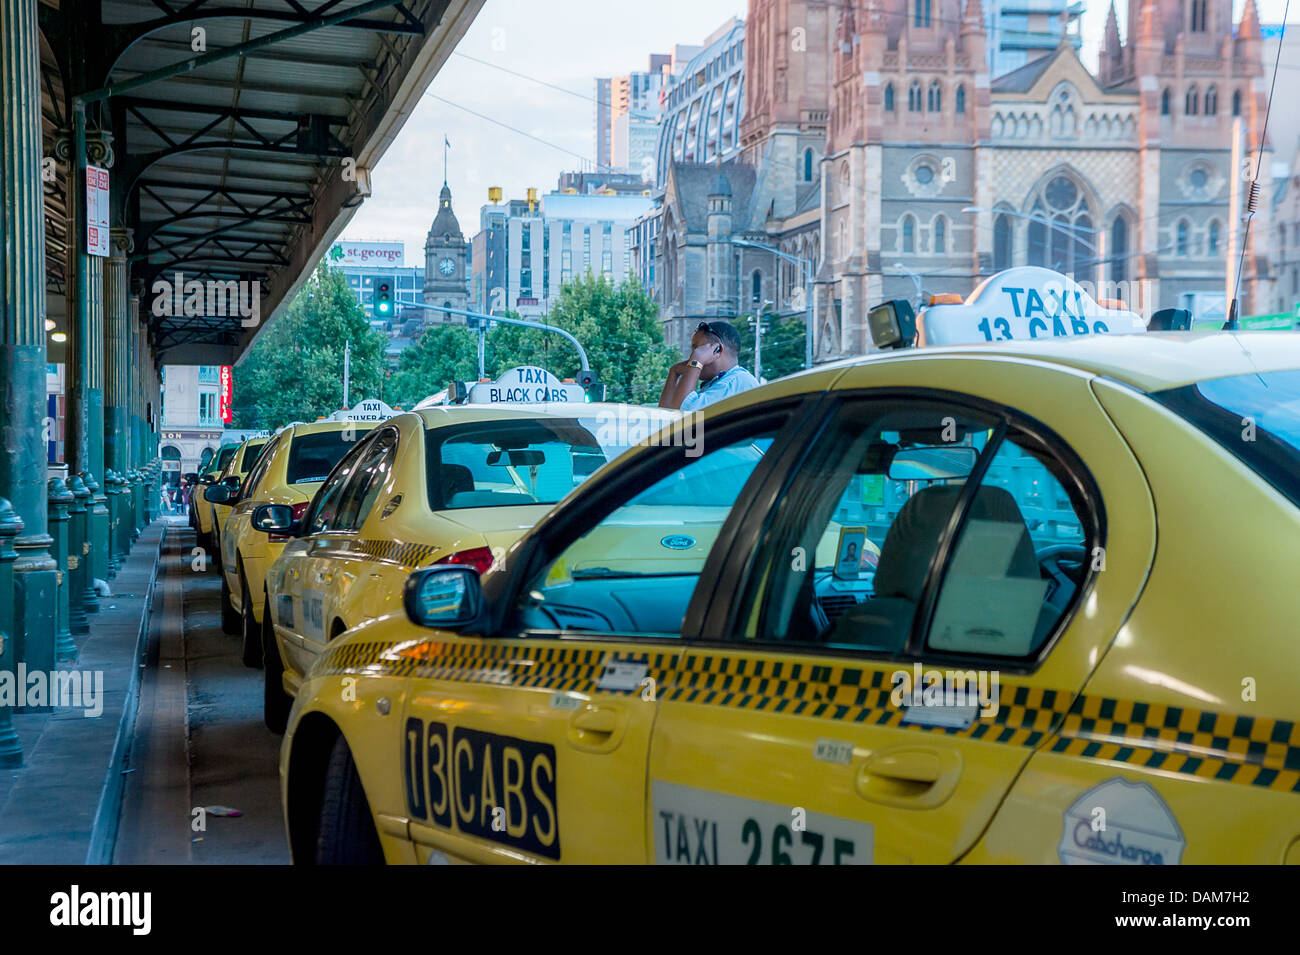 Taxi cabs line up at Flinders Street railway Station in downtown Melbourne, waiting for passengers. - Stock Image